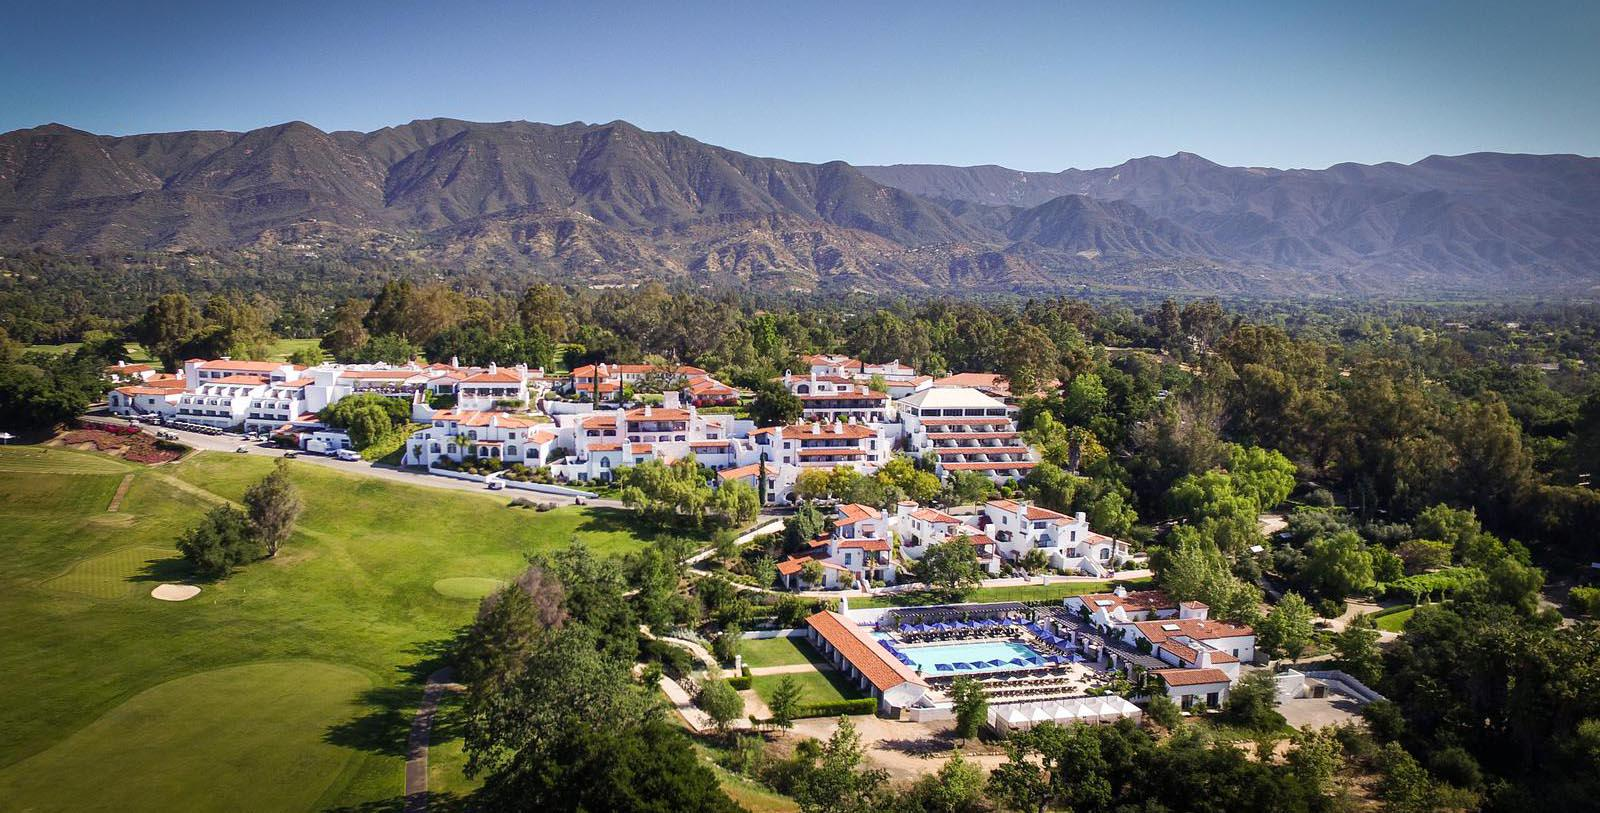 Ojai Valley Inn